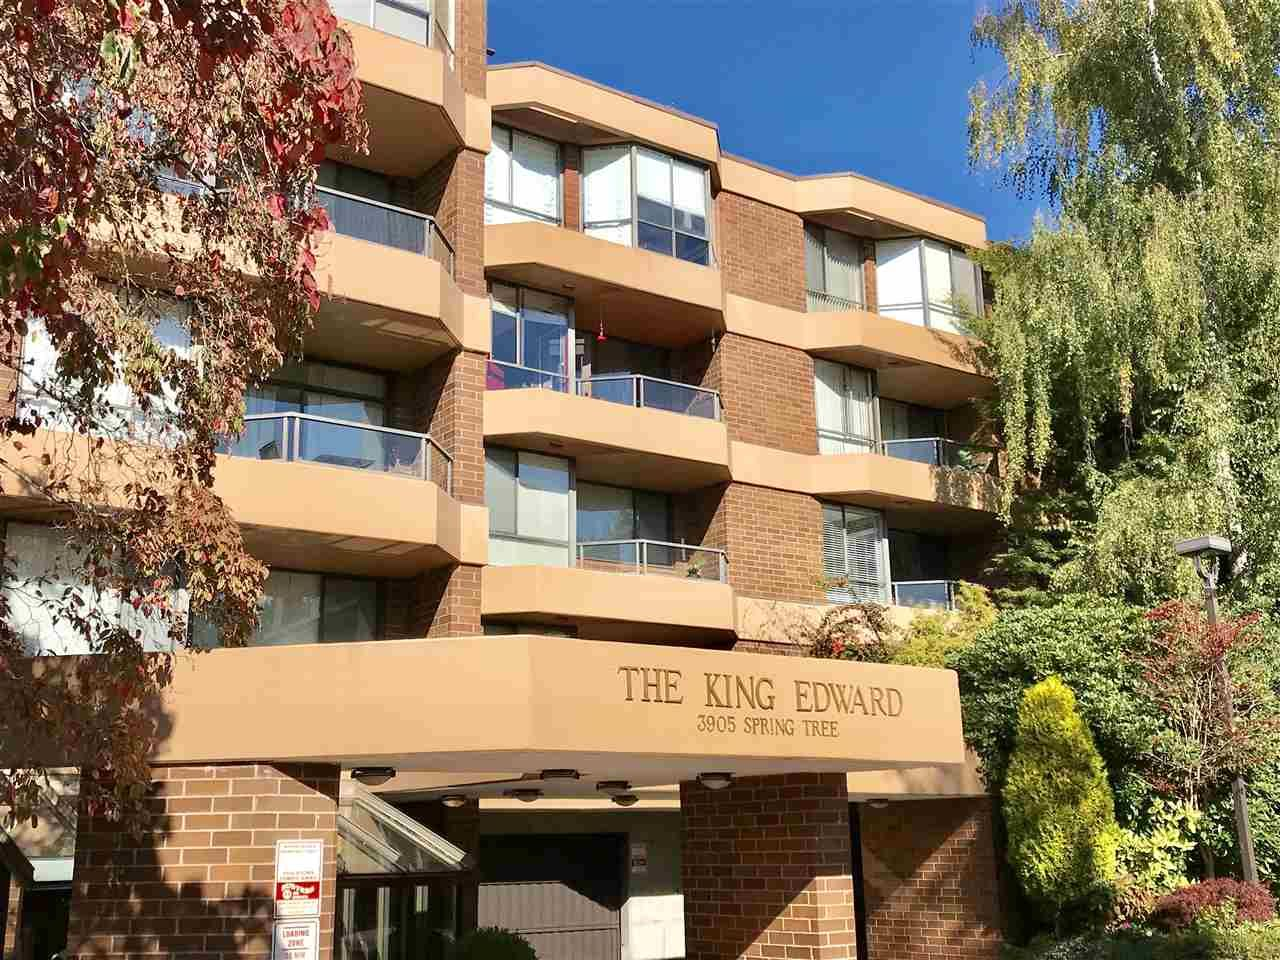 "Main Photo: 104 3905 SPRINGTREE Drive in Vancouver: Quilchena Condo for sale in ""ARBUTUS VILLAGE"" (Vancouver West)  : MLS®# R2413168"